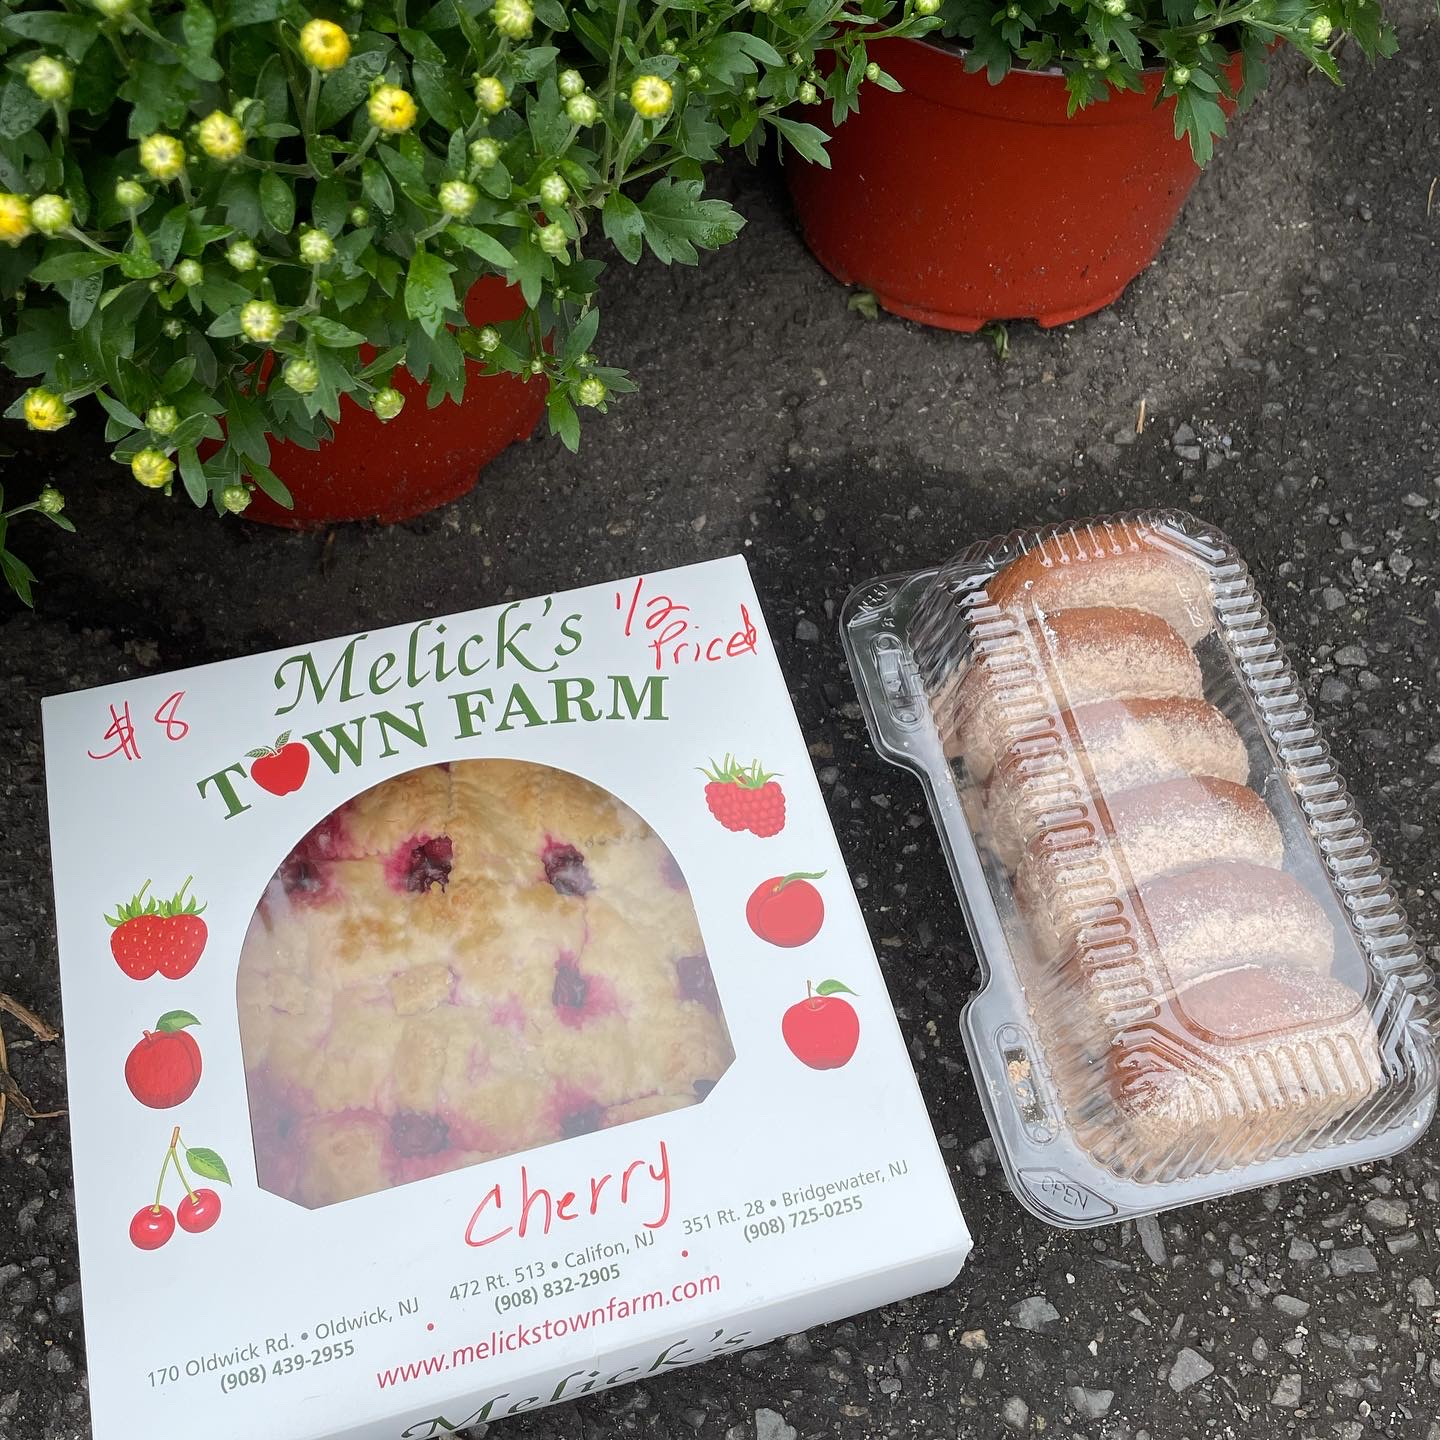 Melick's Town Farm cherry pie and cider donuts